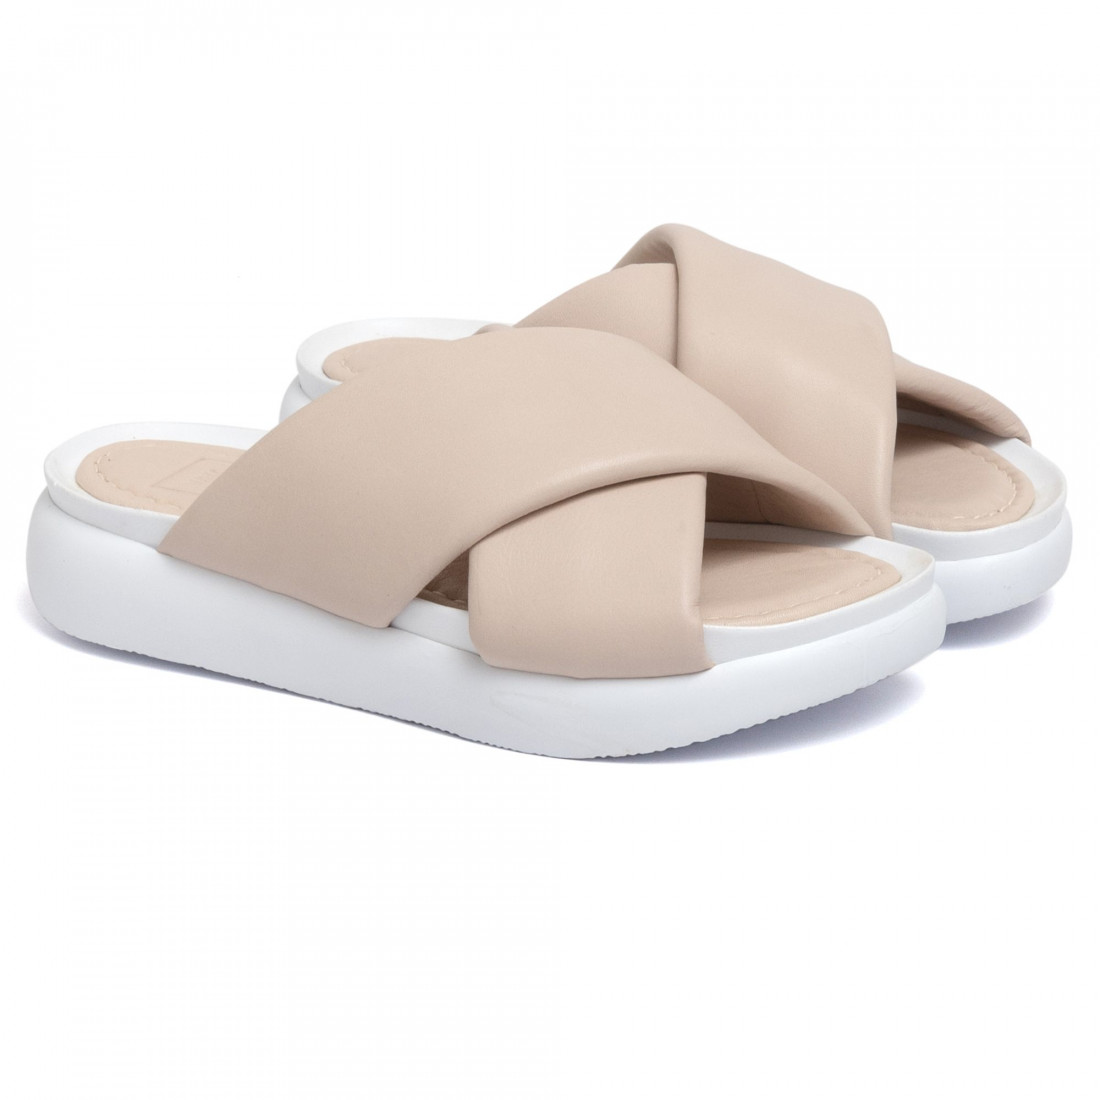 sandals woman why more 9097259 7357